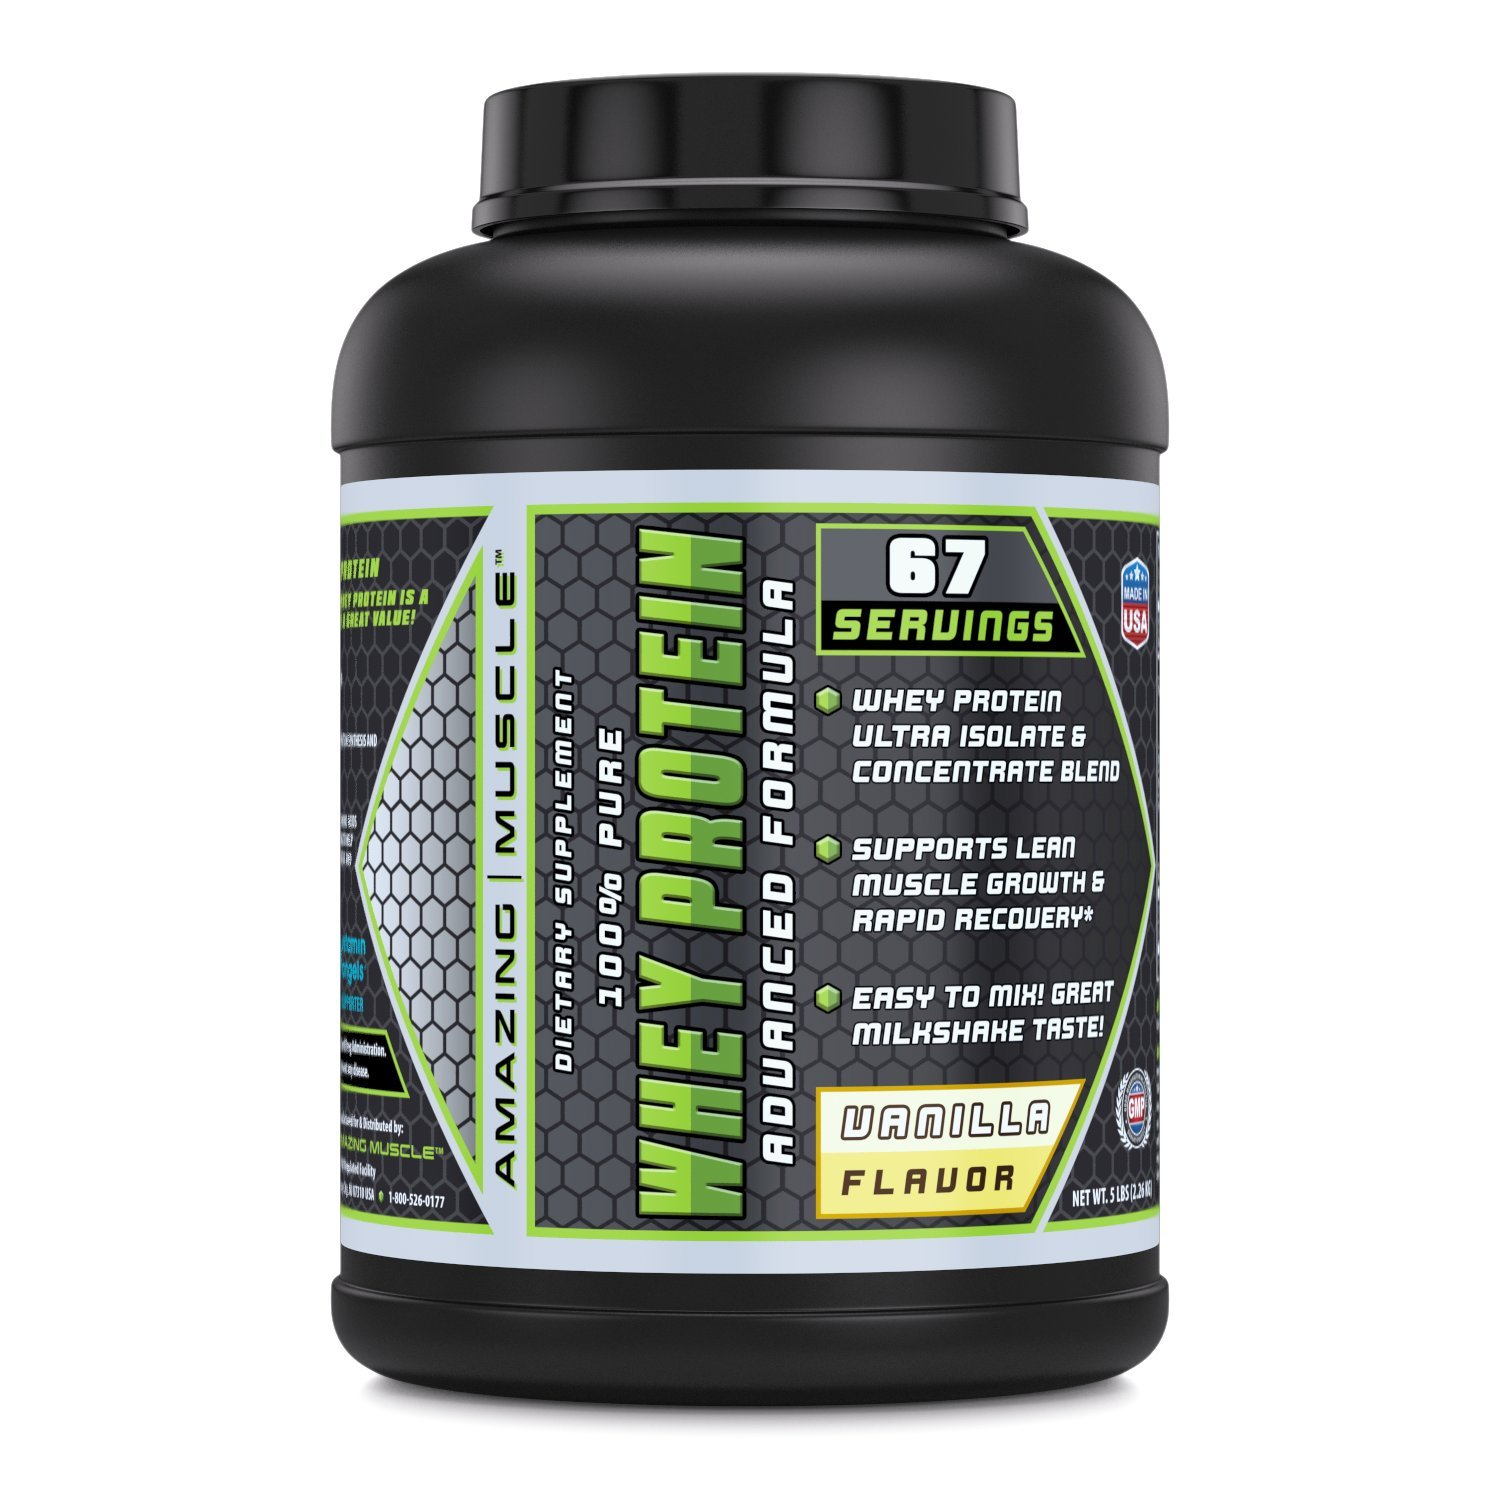 Amazing Muscle 100% Whey Protein Powder - 5 Lbs - Advance Formula - High Performance - With Complete Array Of Amino-Acids - Delicious Vanilla Flavor B01CIPAH3Y